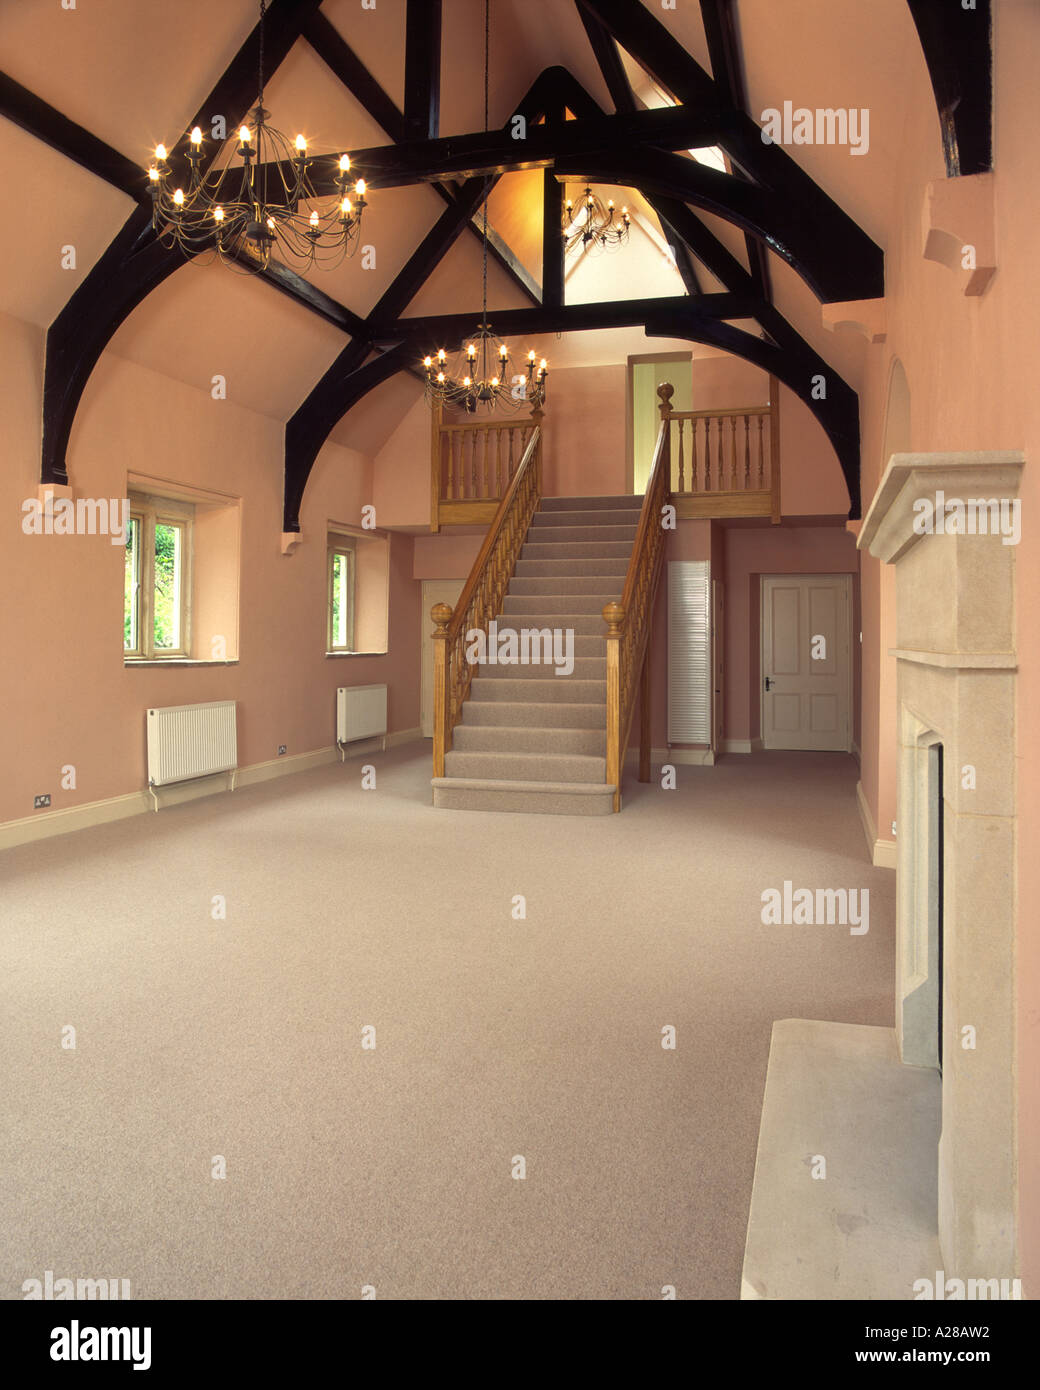 Property Developers Show Home Interior Old School Building Stock Photo Alamy